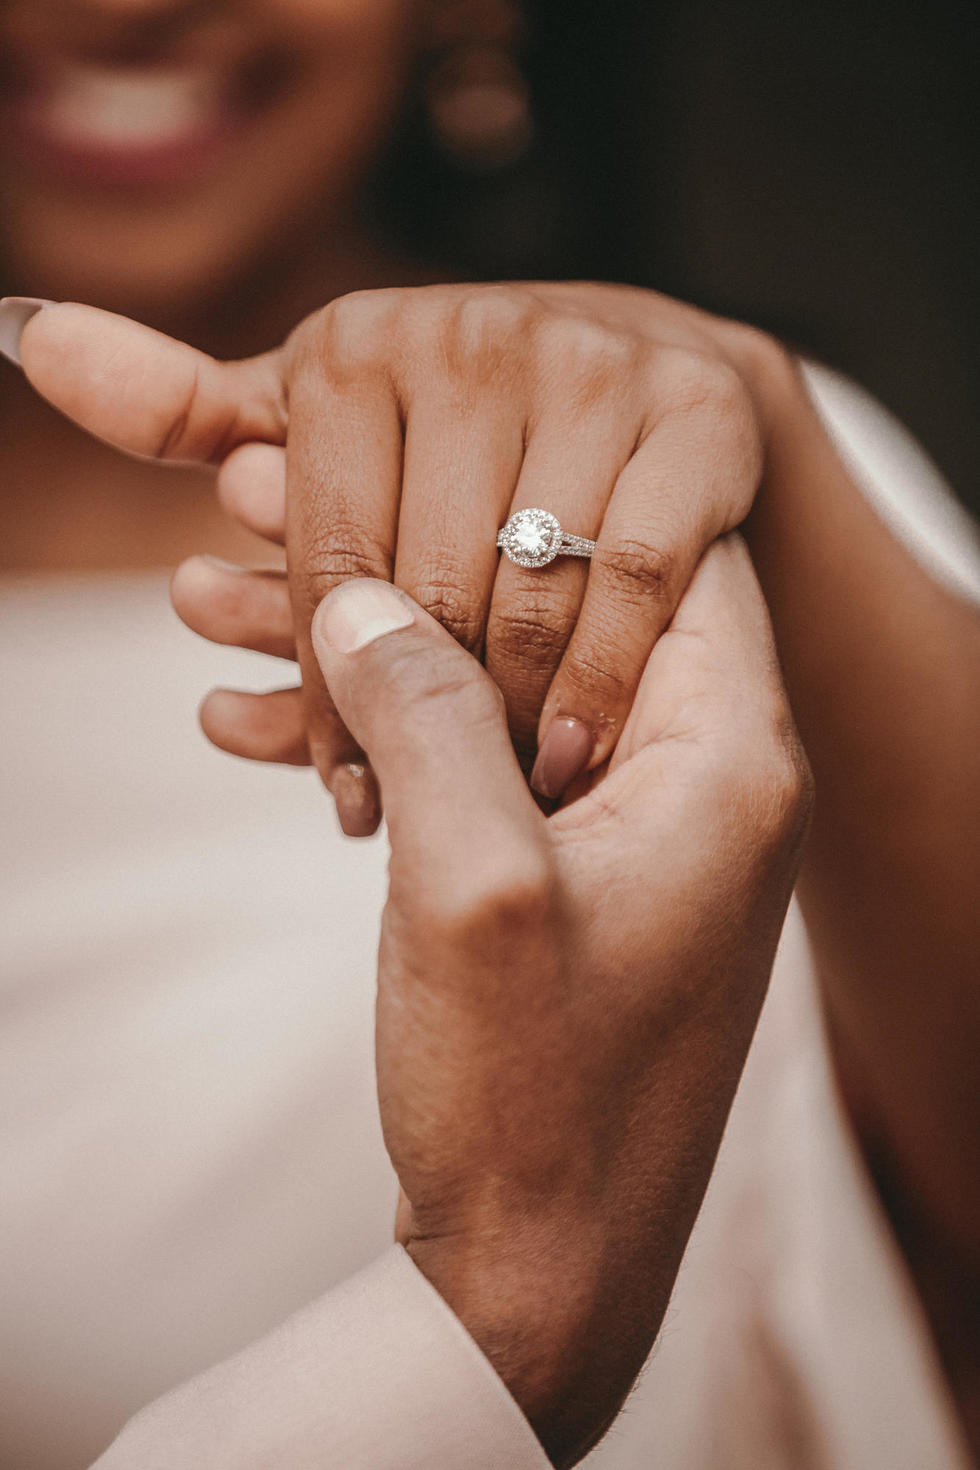 The Secret Message In These Celebs' Engagement Insta